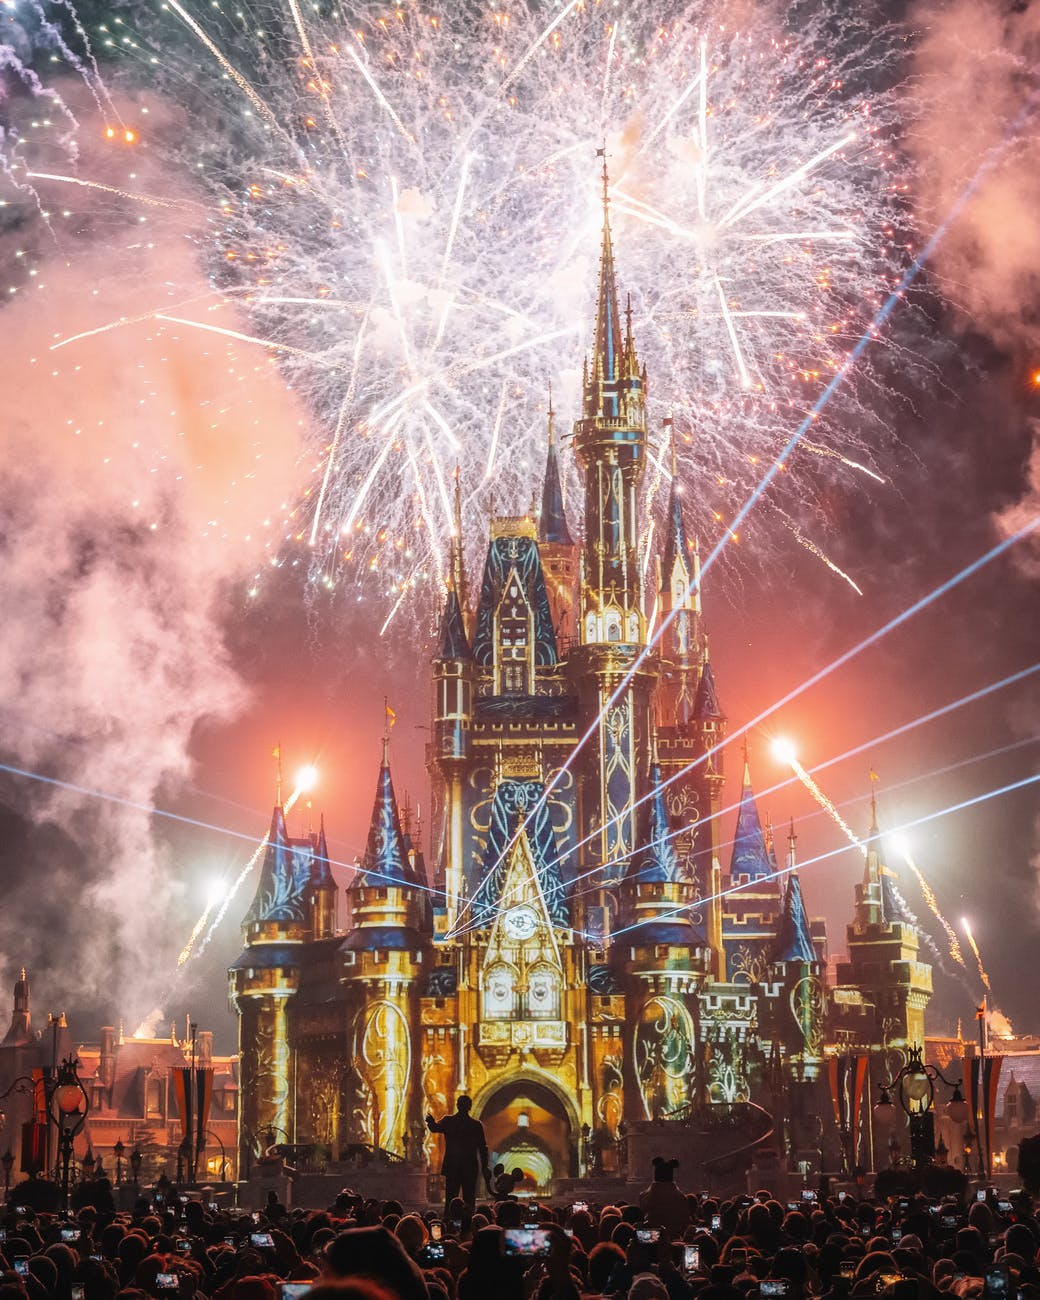 The Disney castle with crowds of people and fireworks going off all around it.